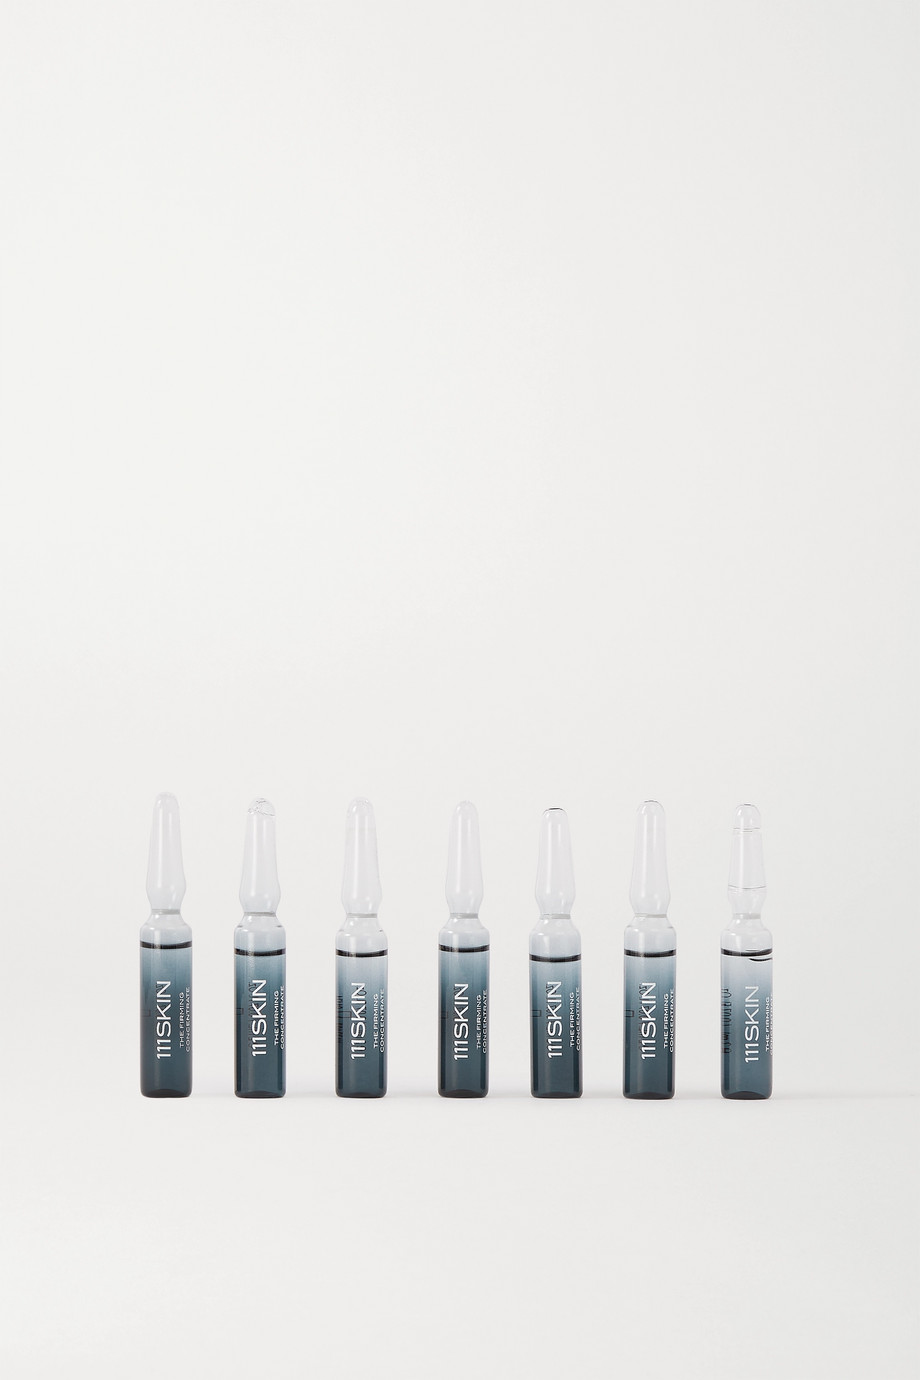 111SKIN The Firming Concentrate, 7 x 2ml